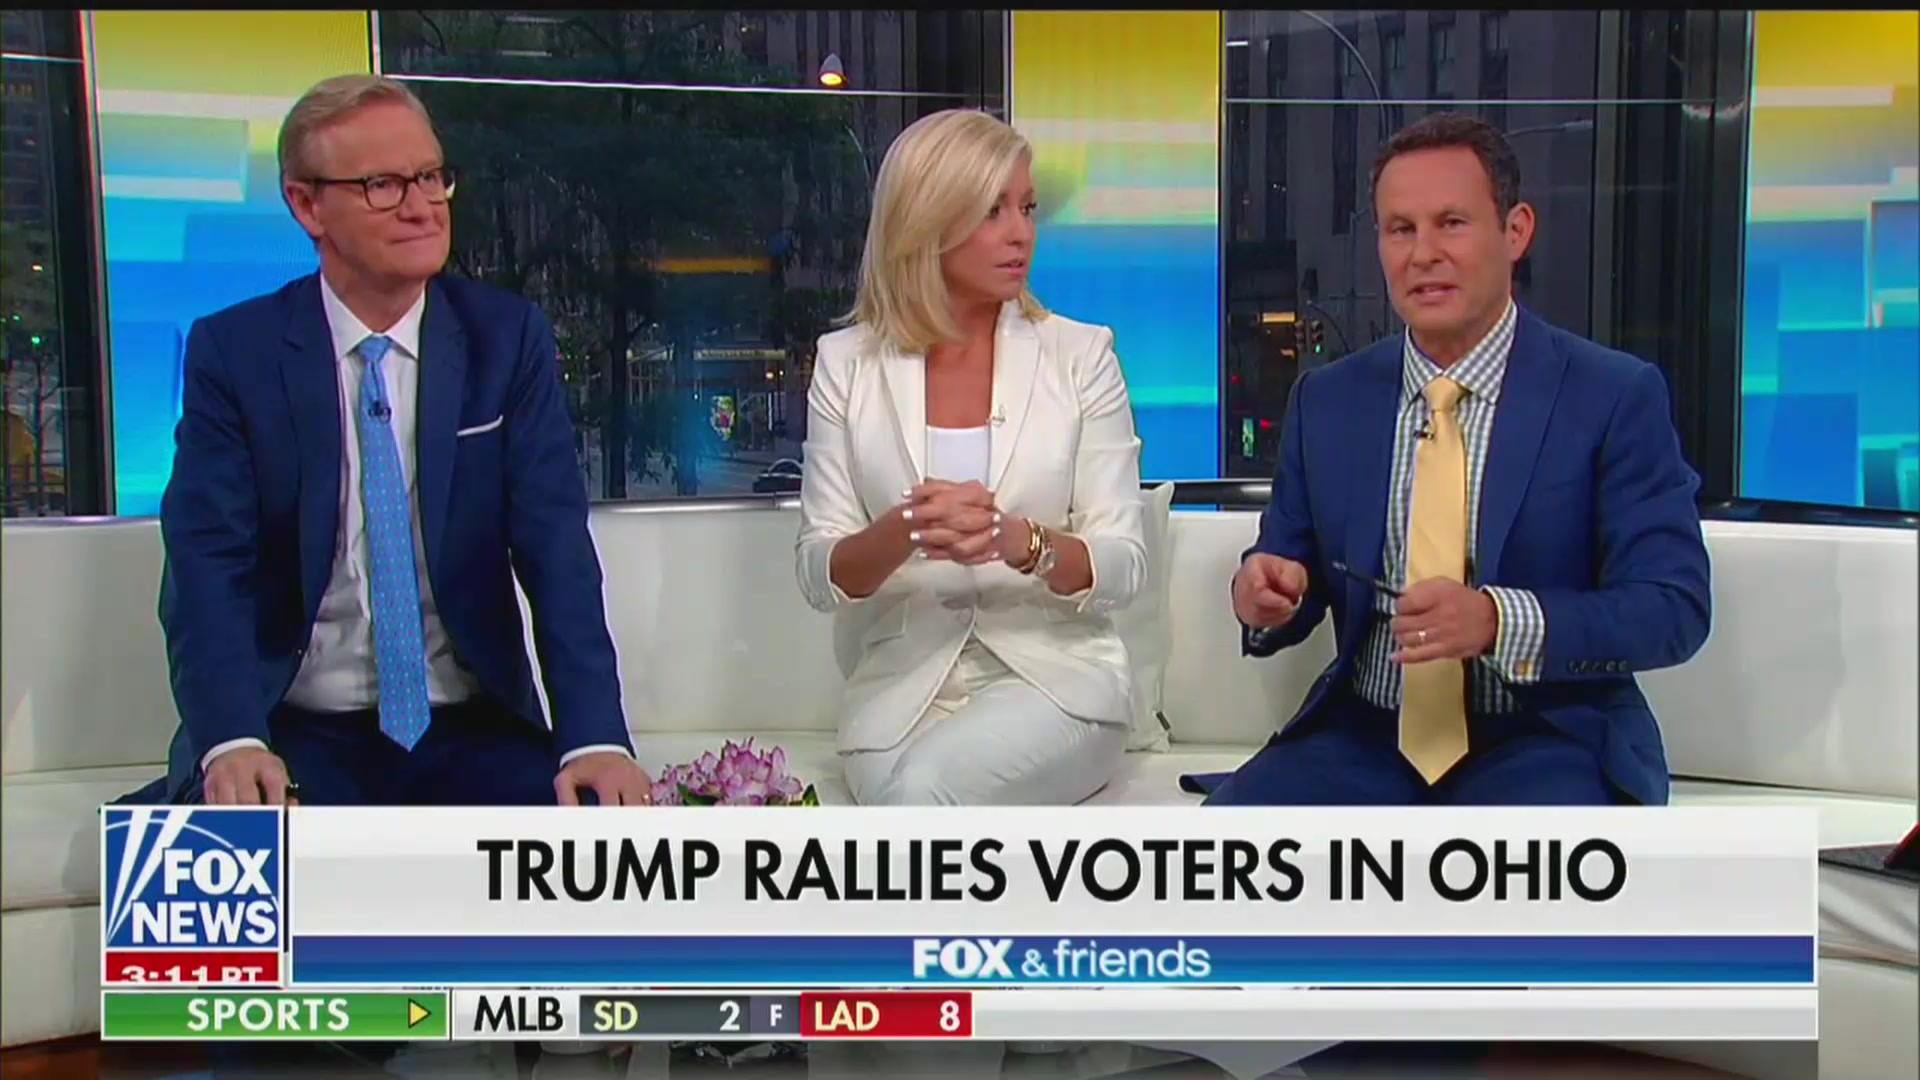 Fox & Friends' Ainsley Earhardt: Trump's a 'Blue-Collar' Worker From the 'Rust Belt'